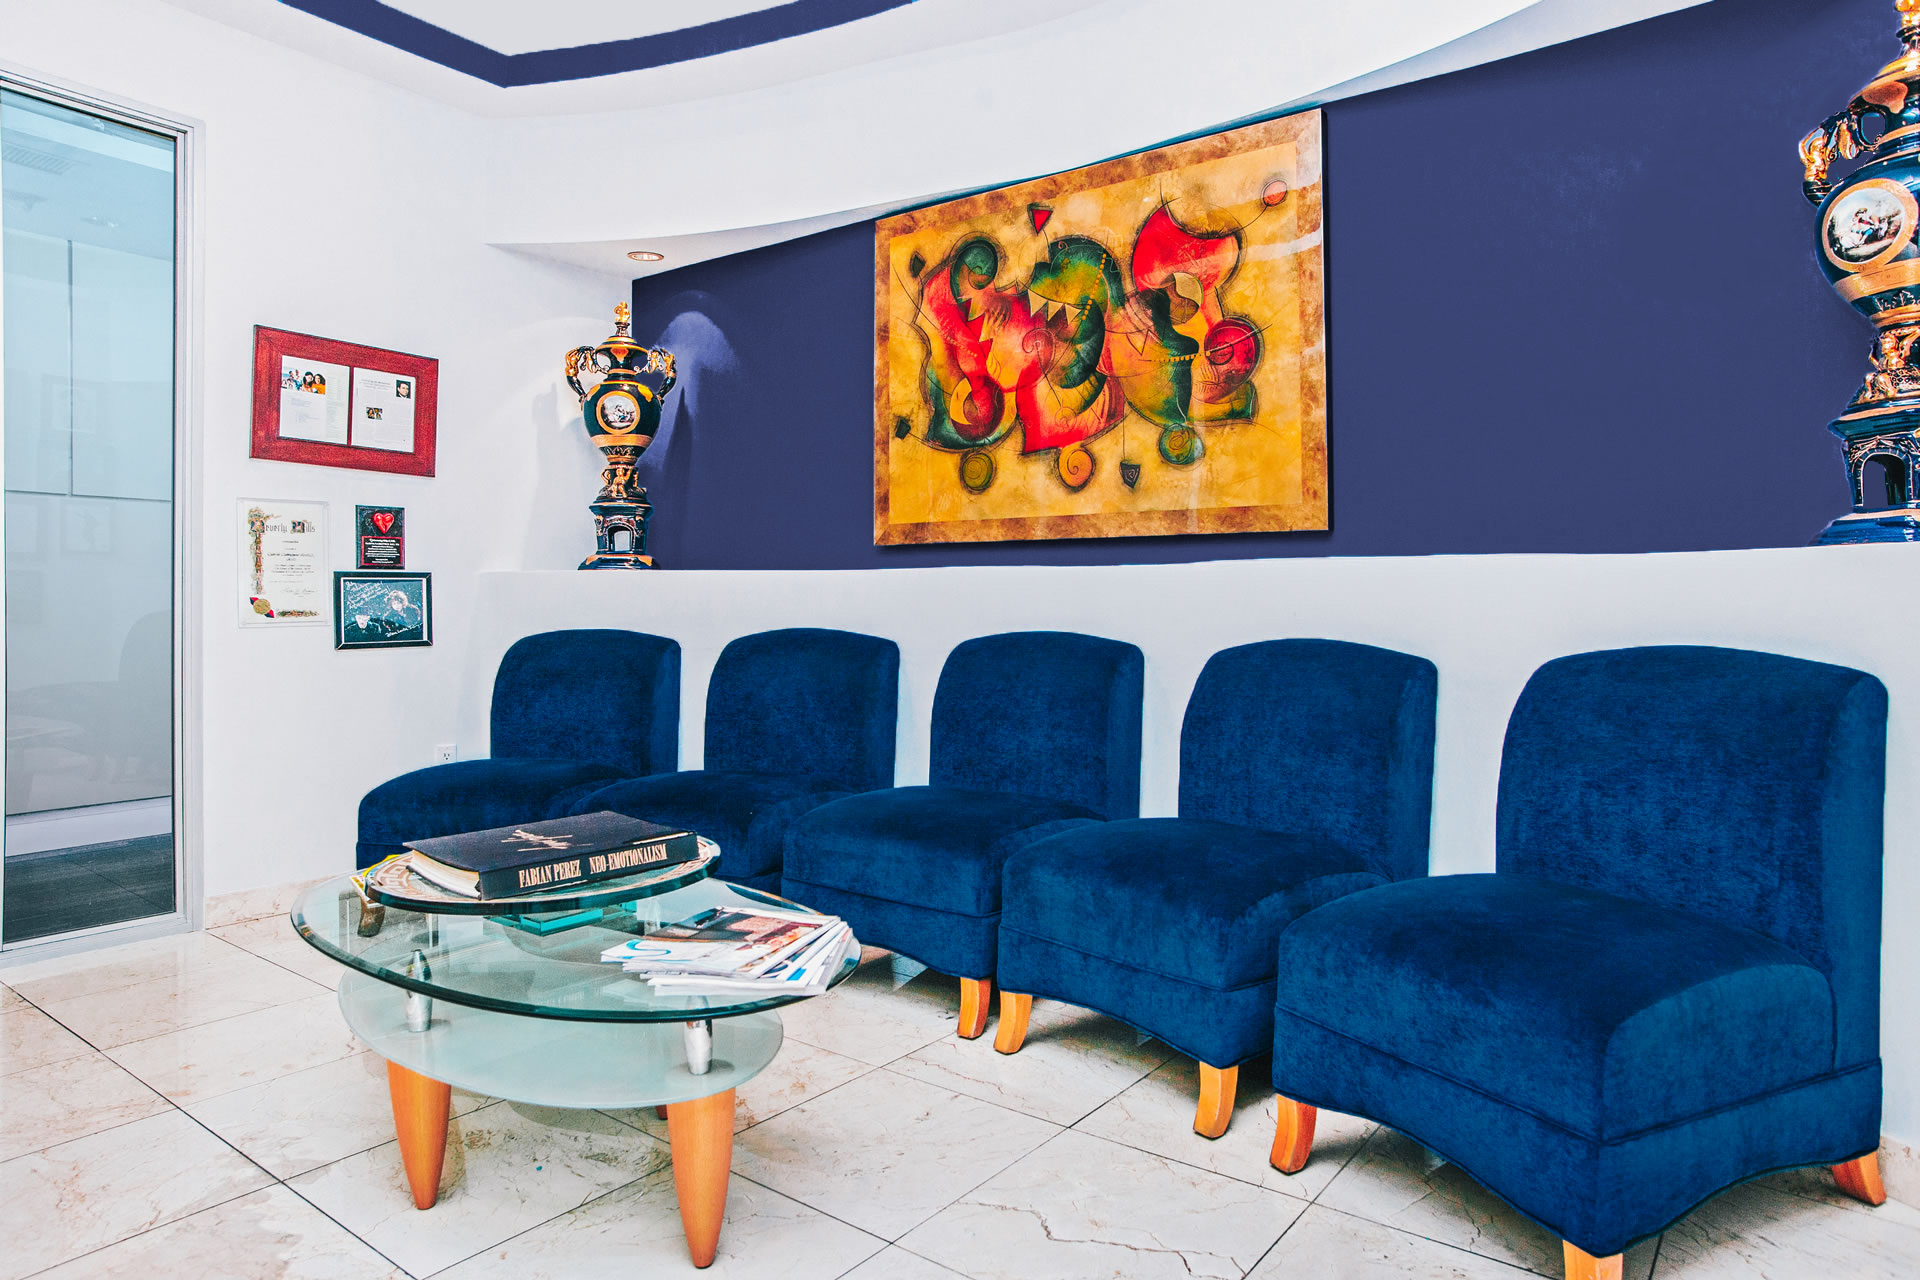 youtube beverly hills office. Welcome To Beverly Hills Oral Surgery Youtube Office